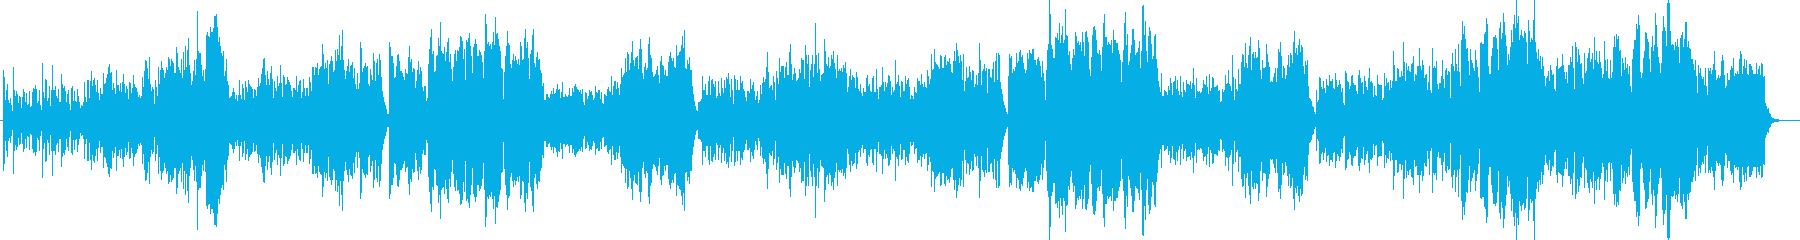 Medieval waltz orchestra's reproduced waveform